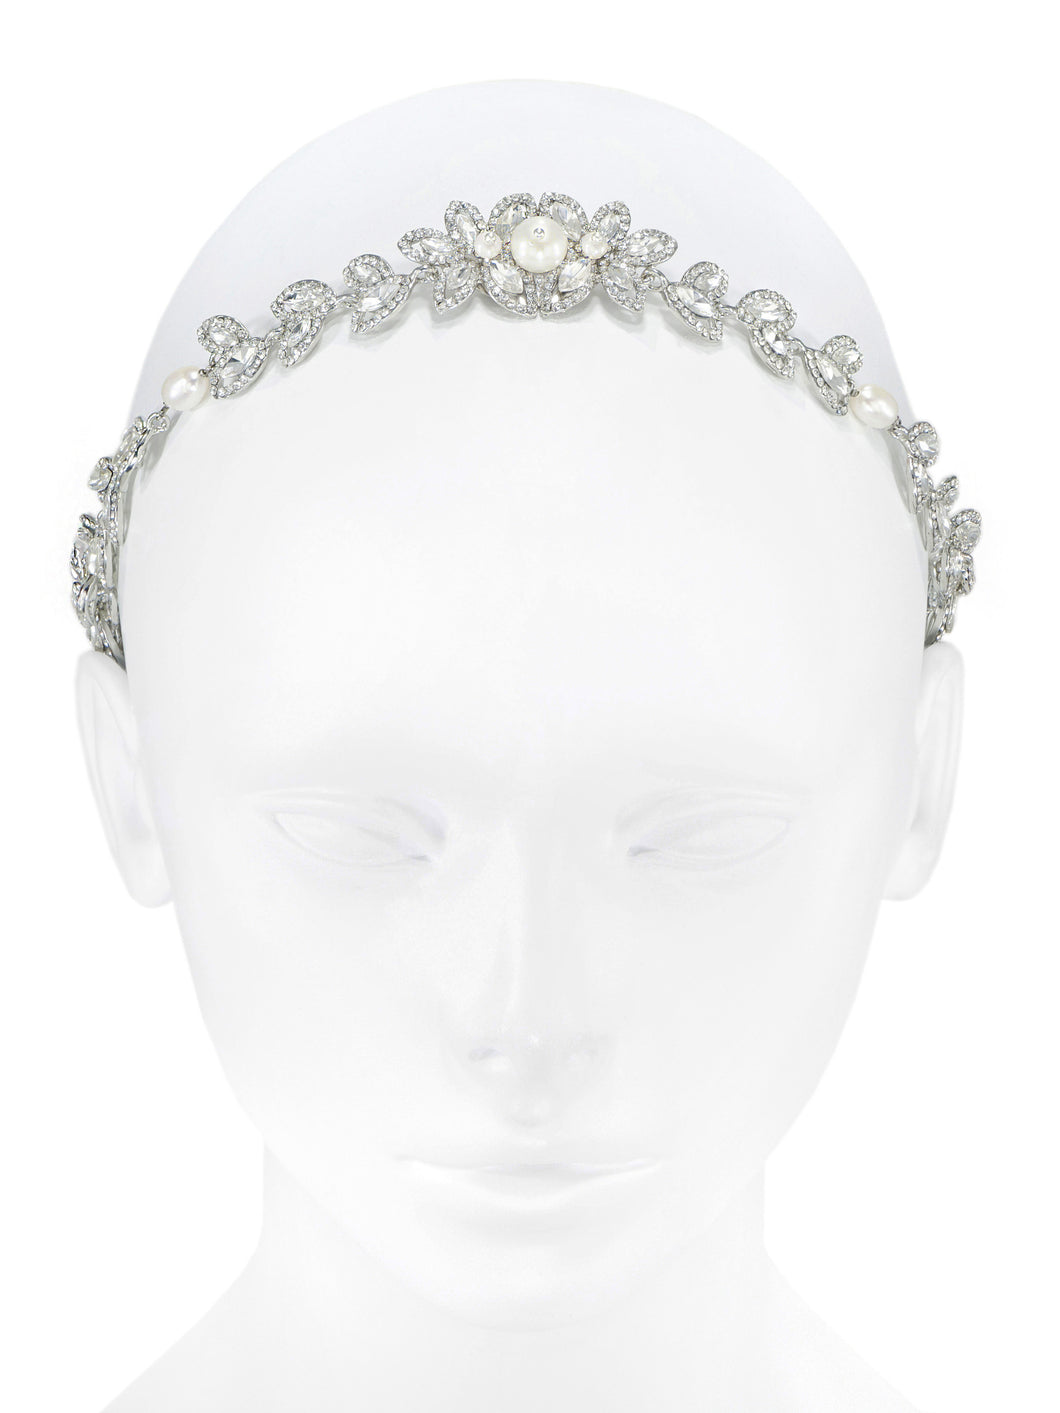 Enchantment Rhinestone Leaf Headband - Silver